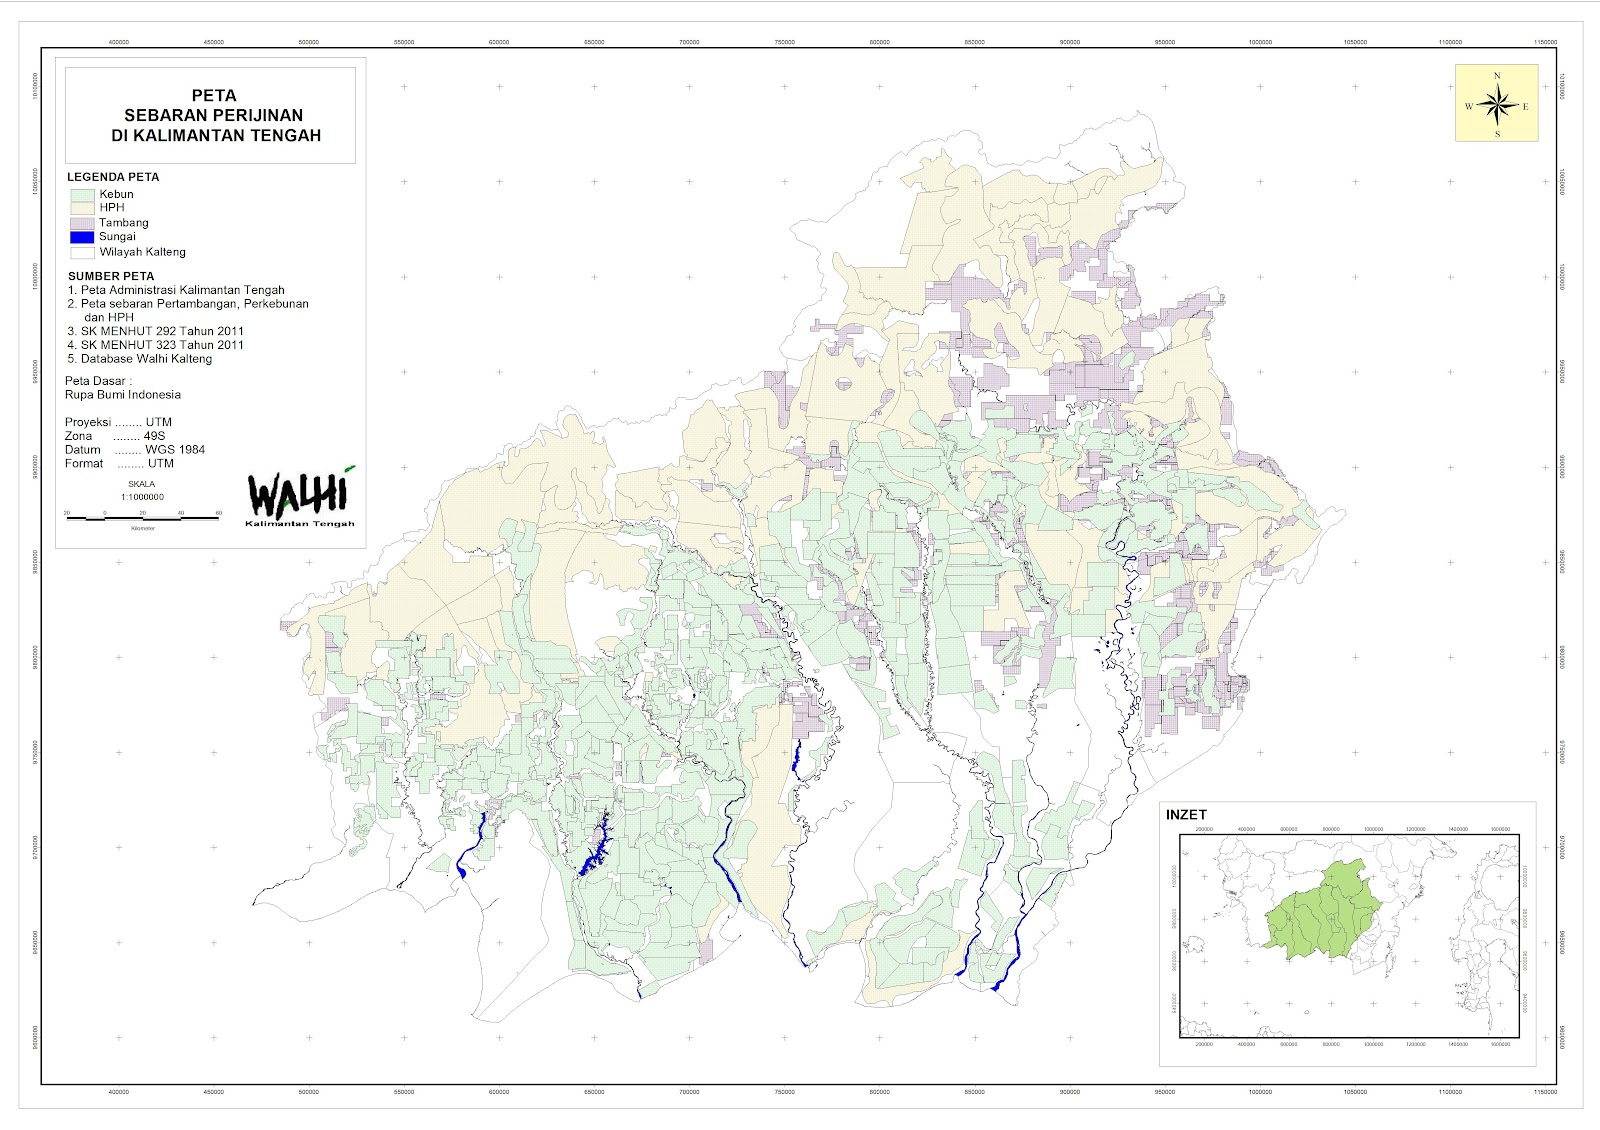 Central Borneo Forest & People: Kalimantan Tengah milik siapa?